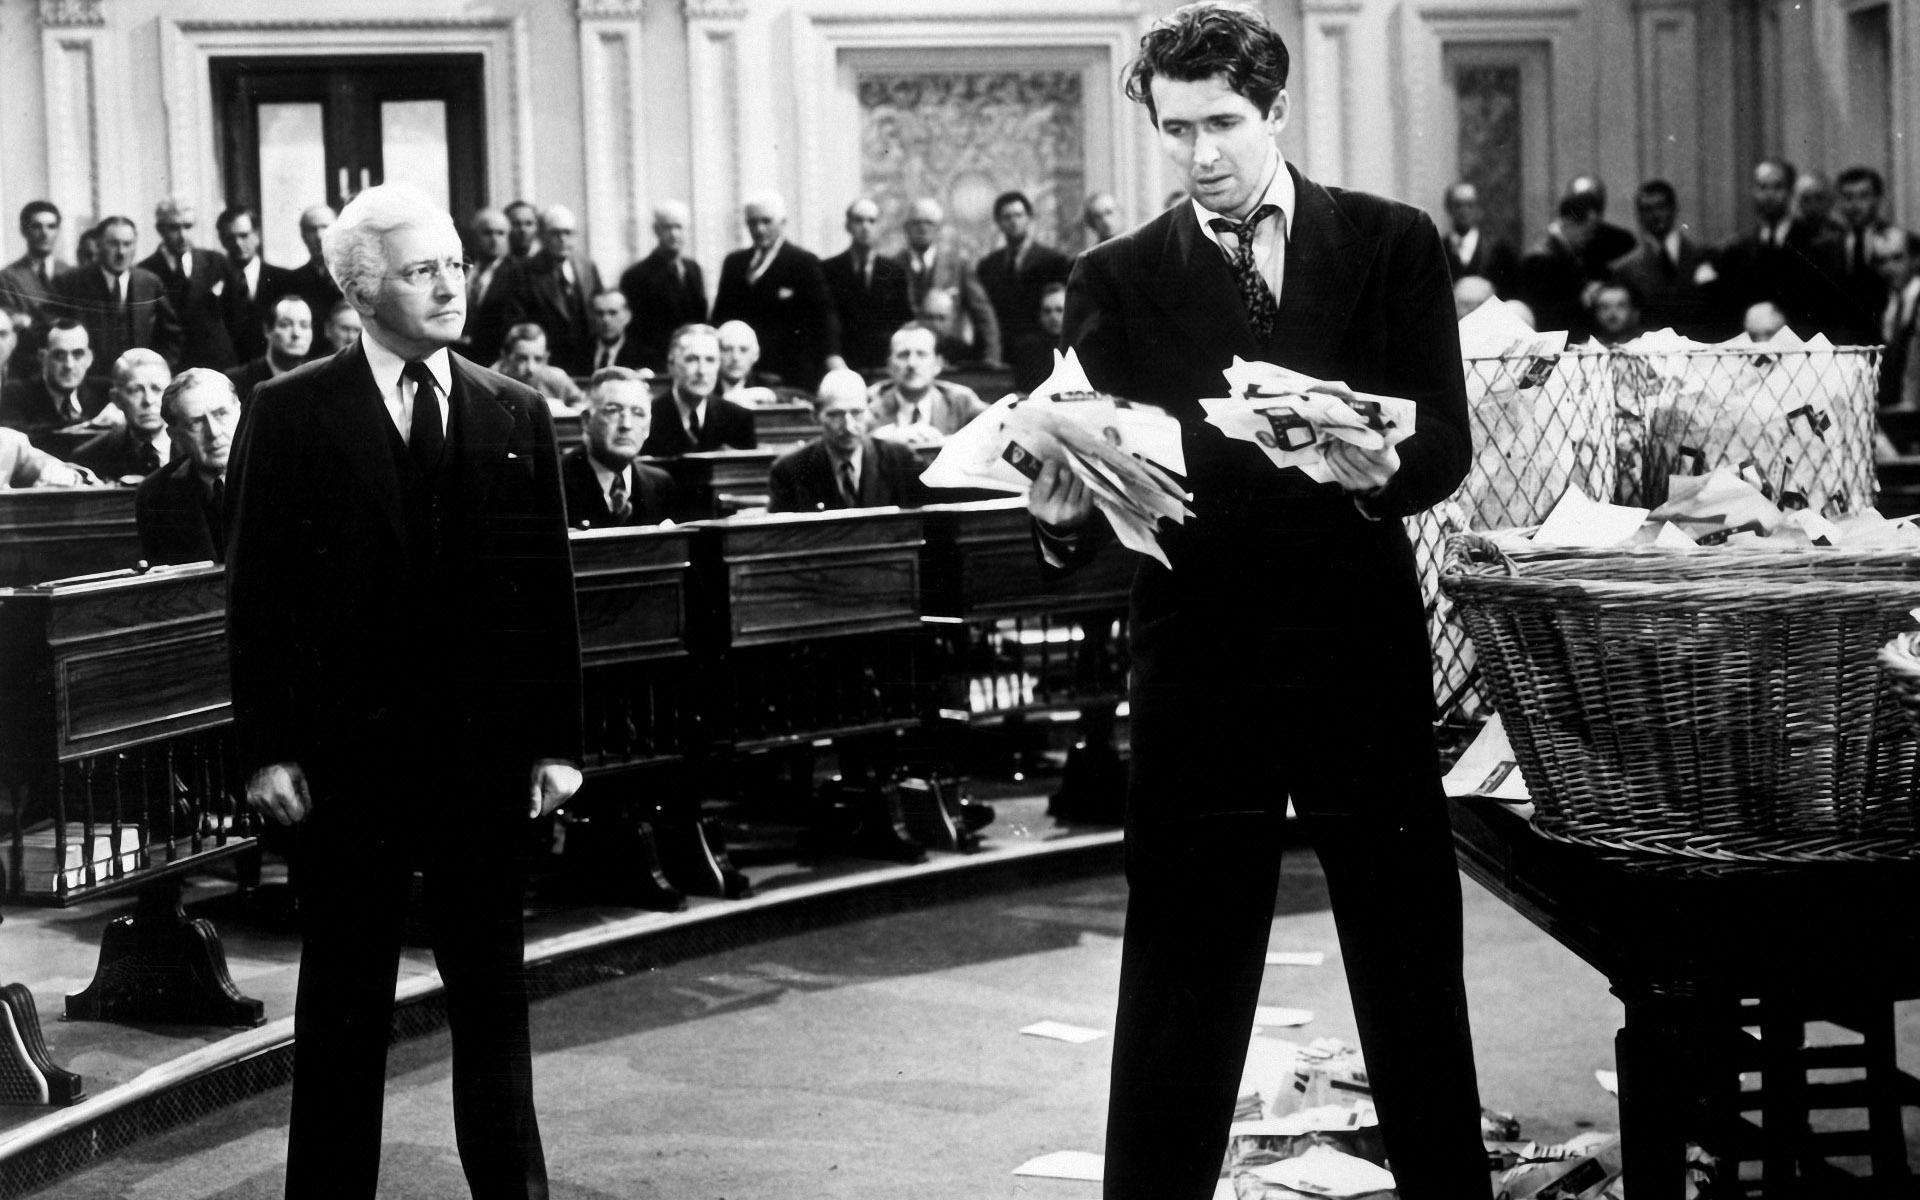 James Stewart on the Senate floor in 'Mr. Smith Goes to Washington'